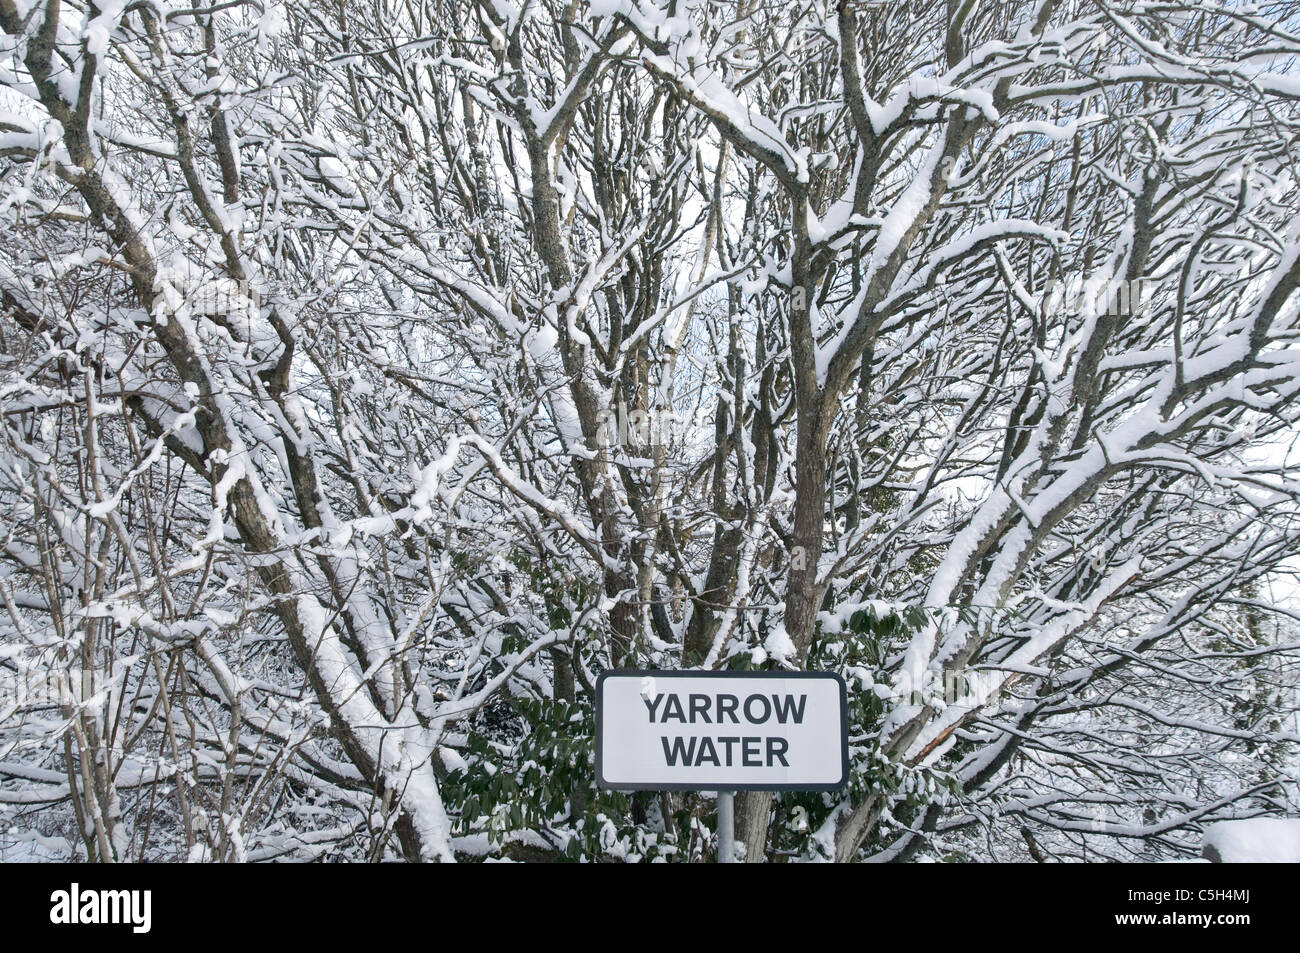 Sign for Yarrow Water in thickly covered snowy branches - Stock Image